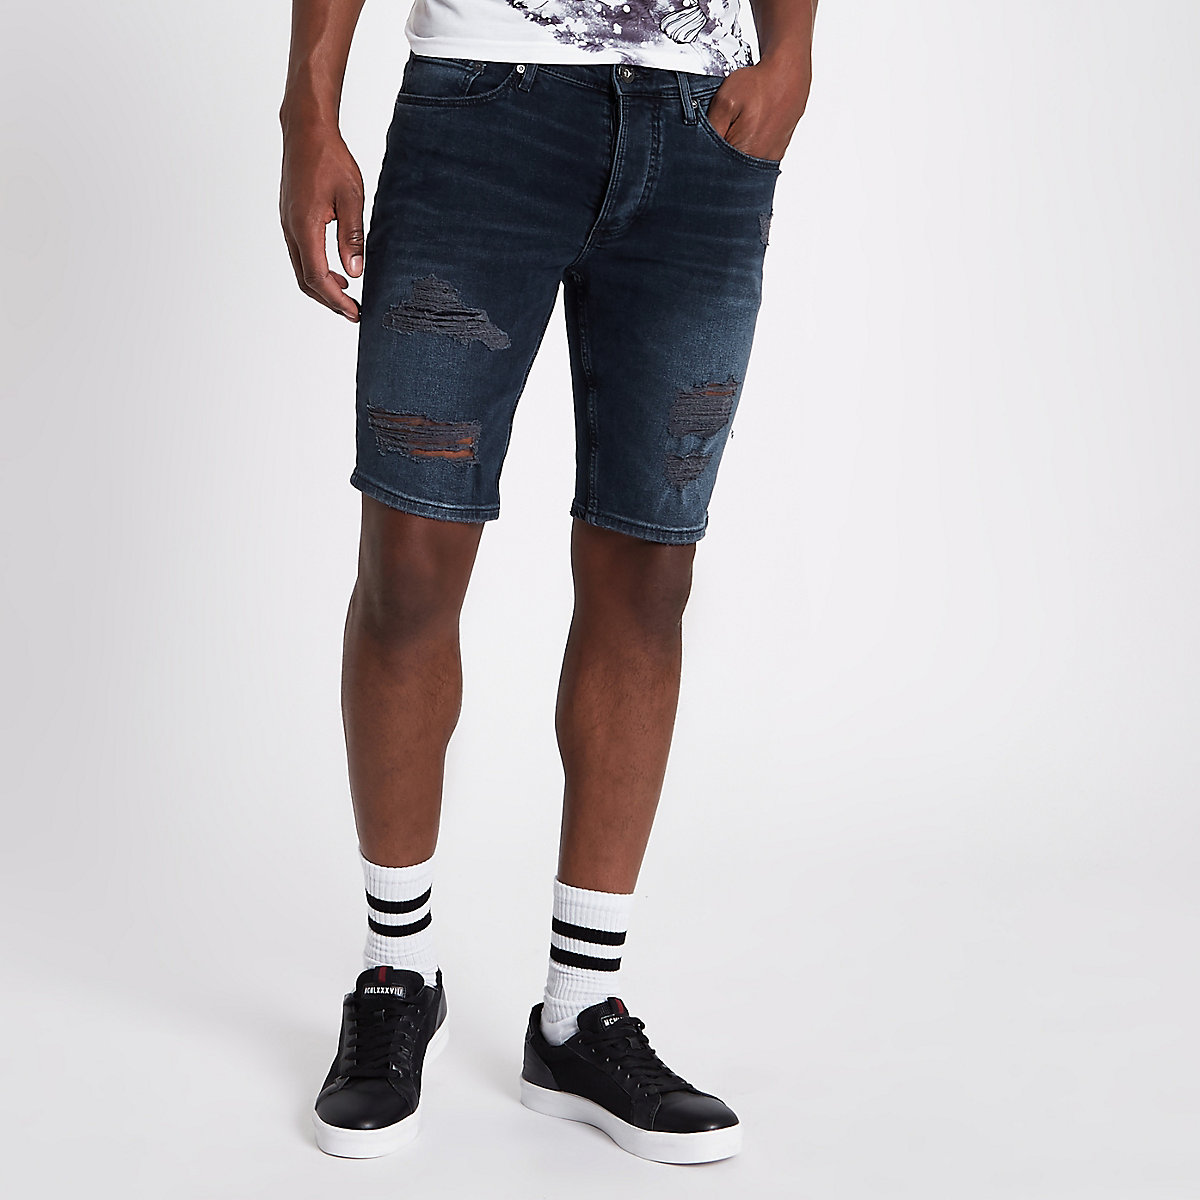 Dark blue ripped skinny fit denim shorts